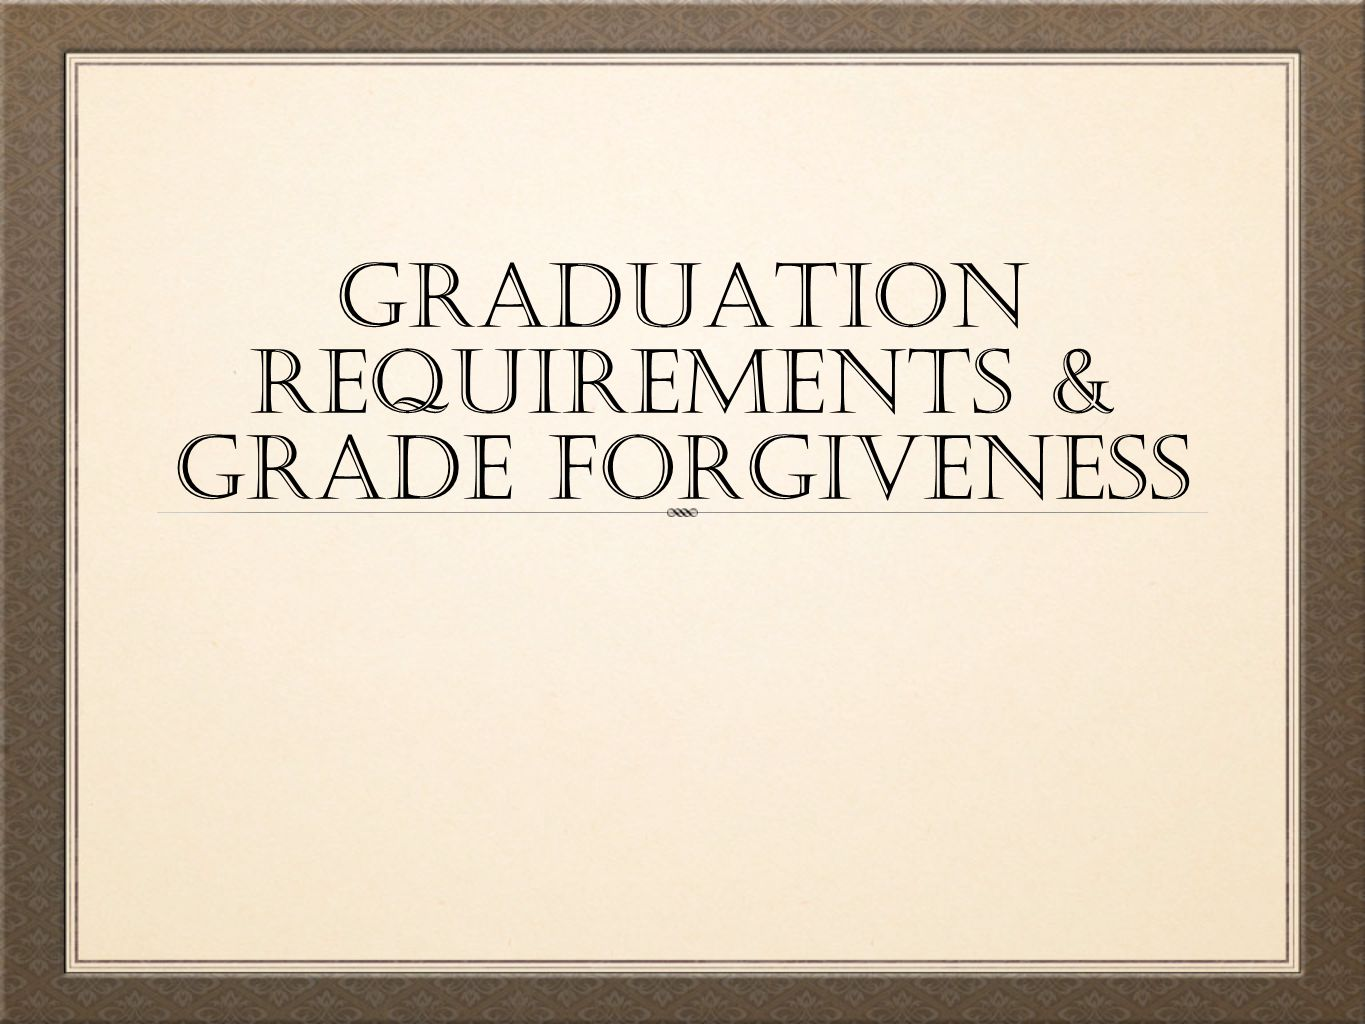 Graduation requirements & Grade forgiveness